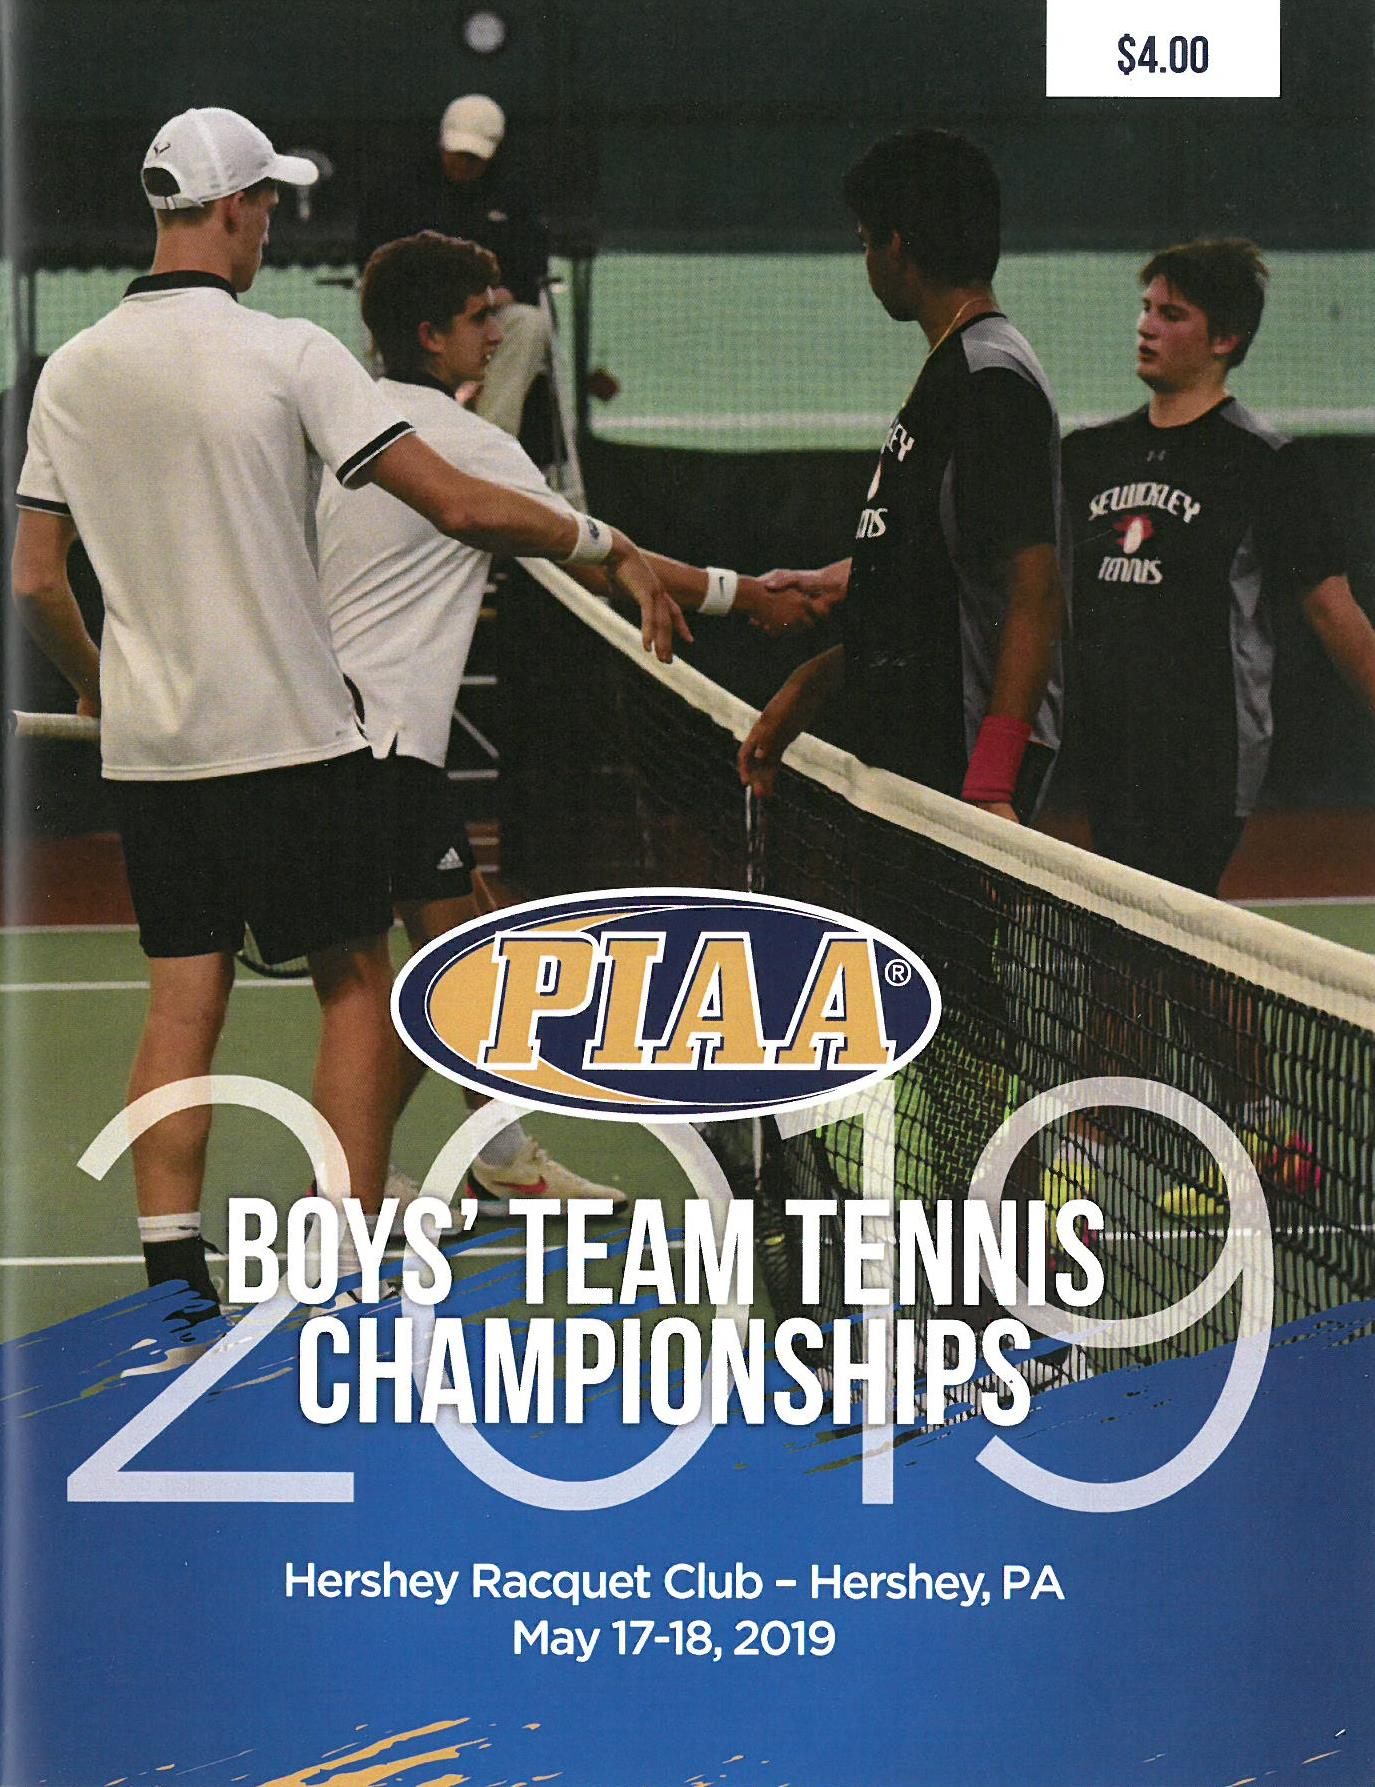 2018 Boys' Team Tennis Championship Program